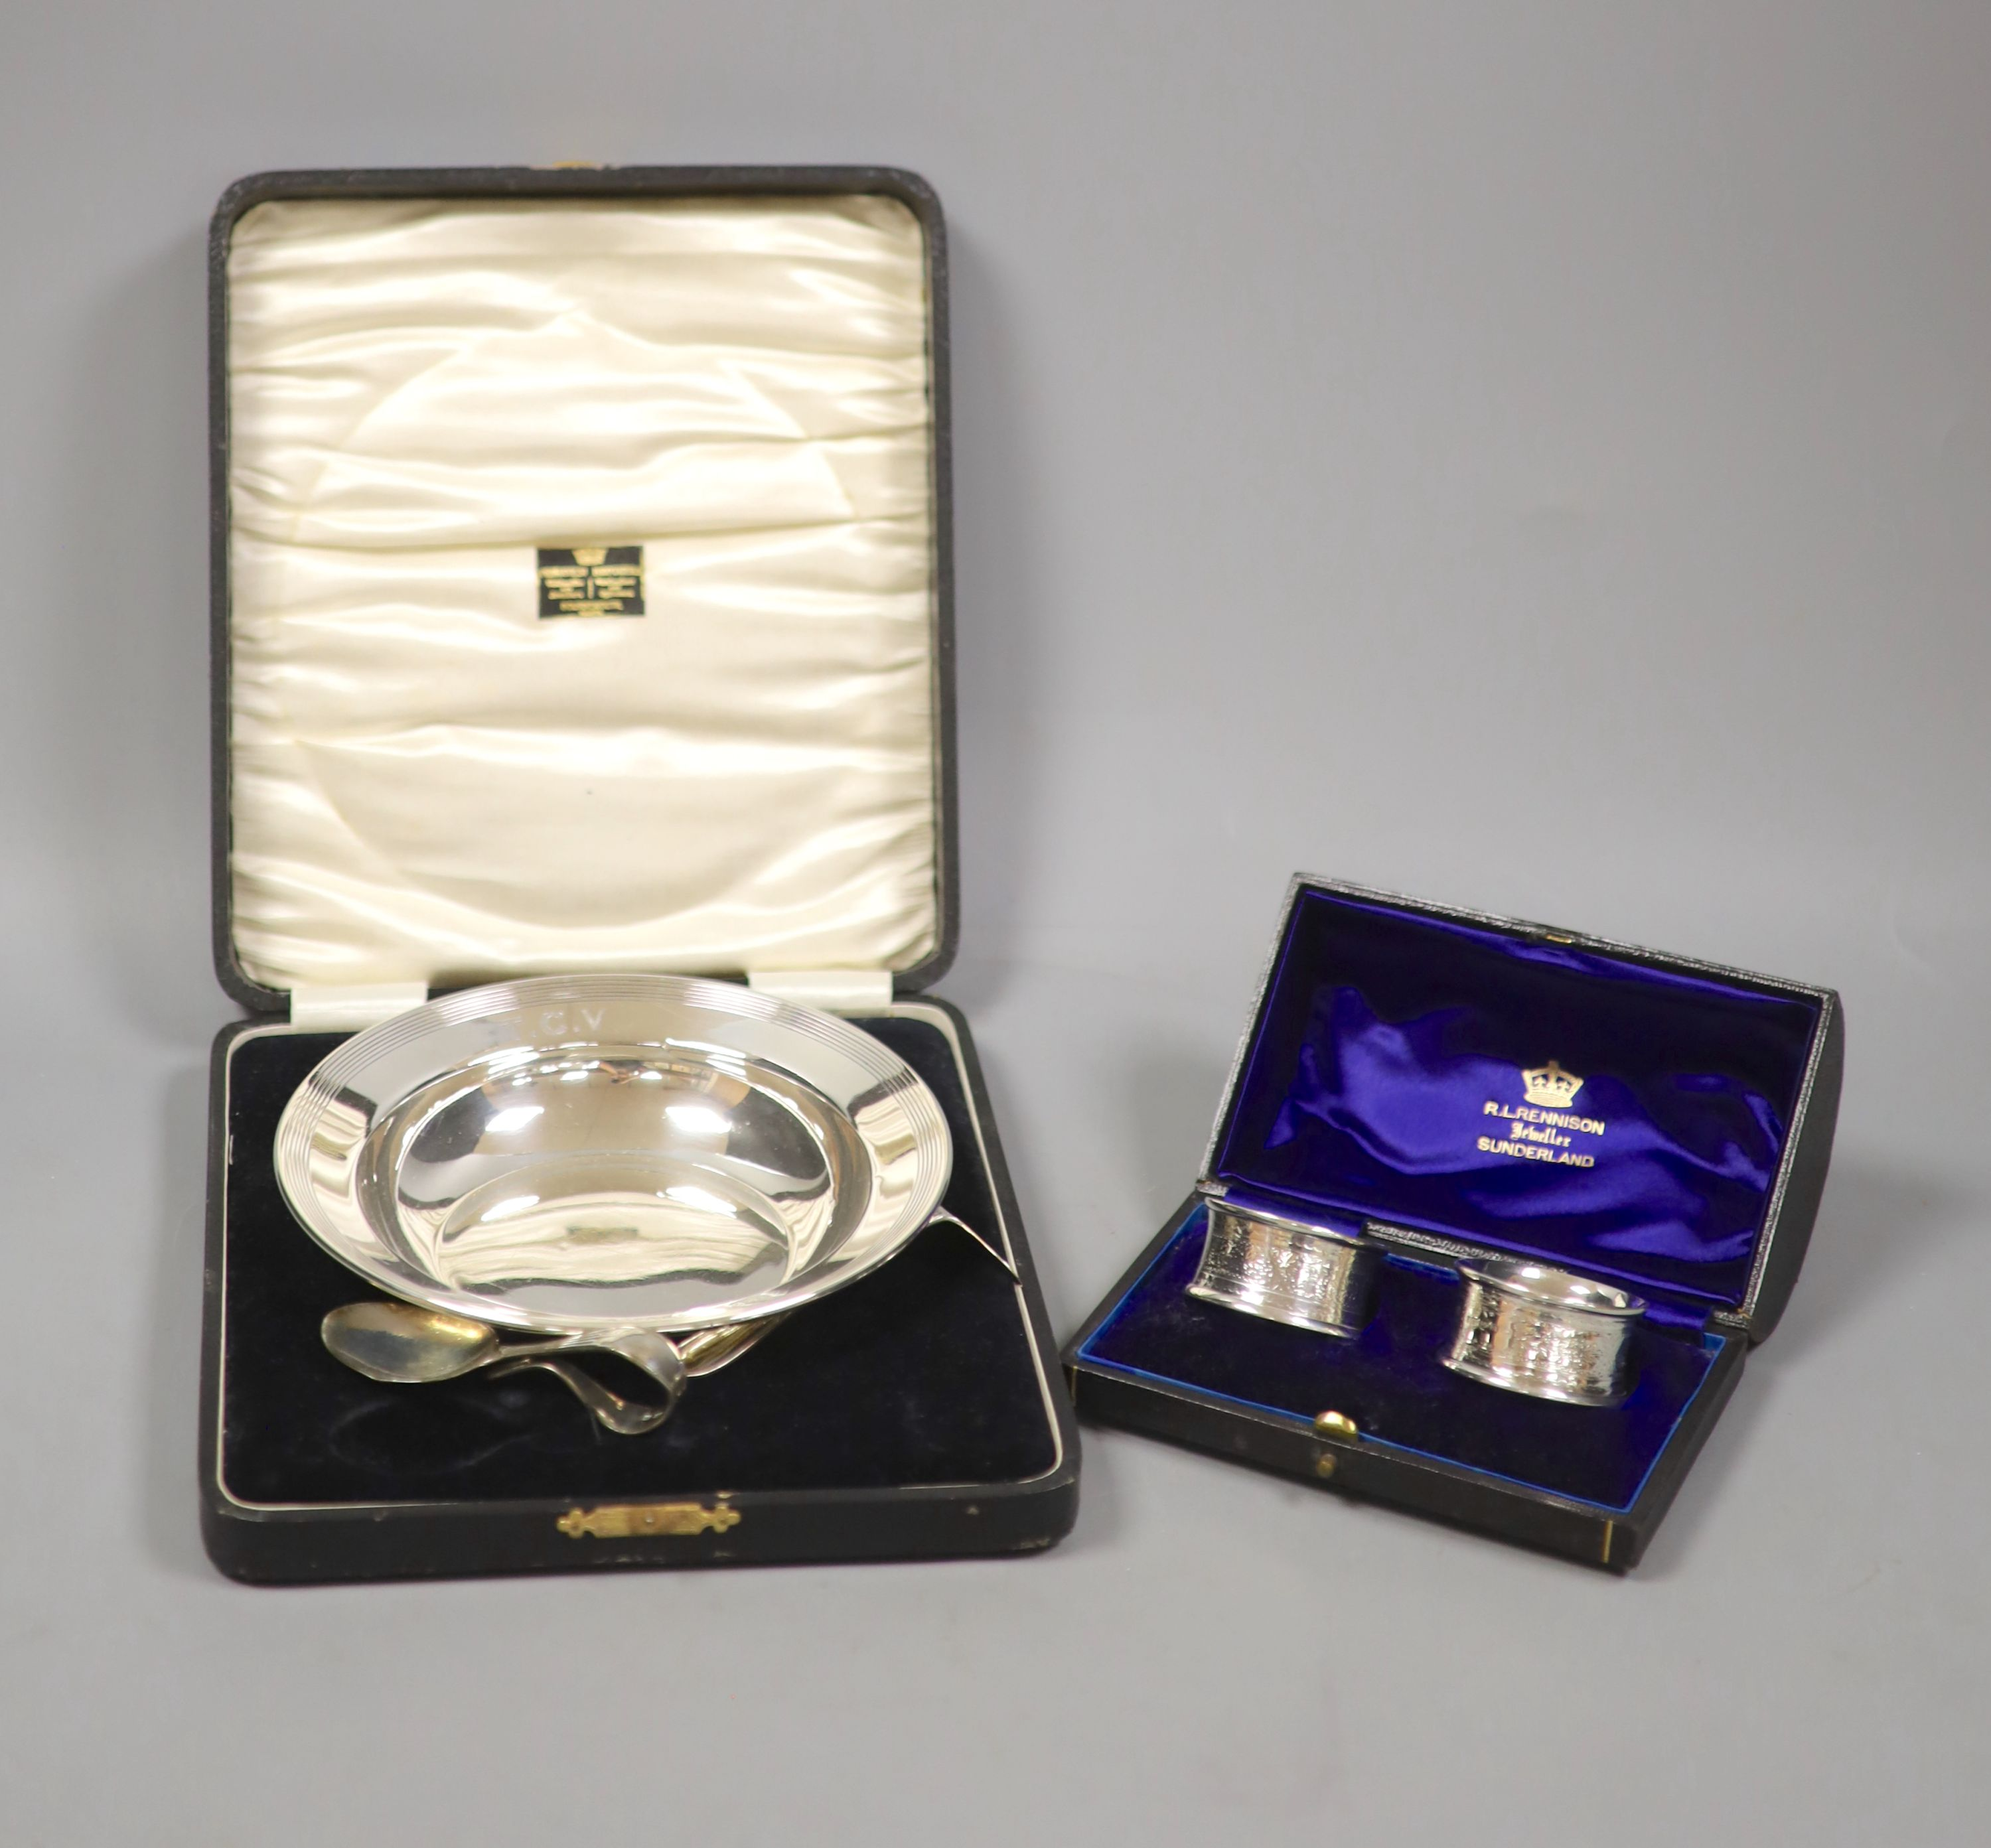 A cased christening dish with associated pusher and spoon, together with a cased pair of silver